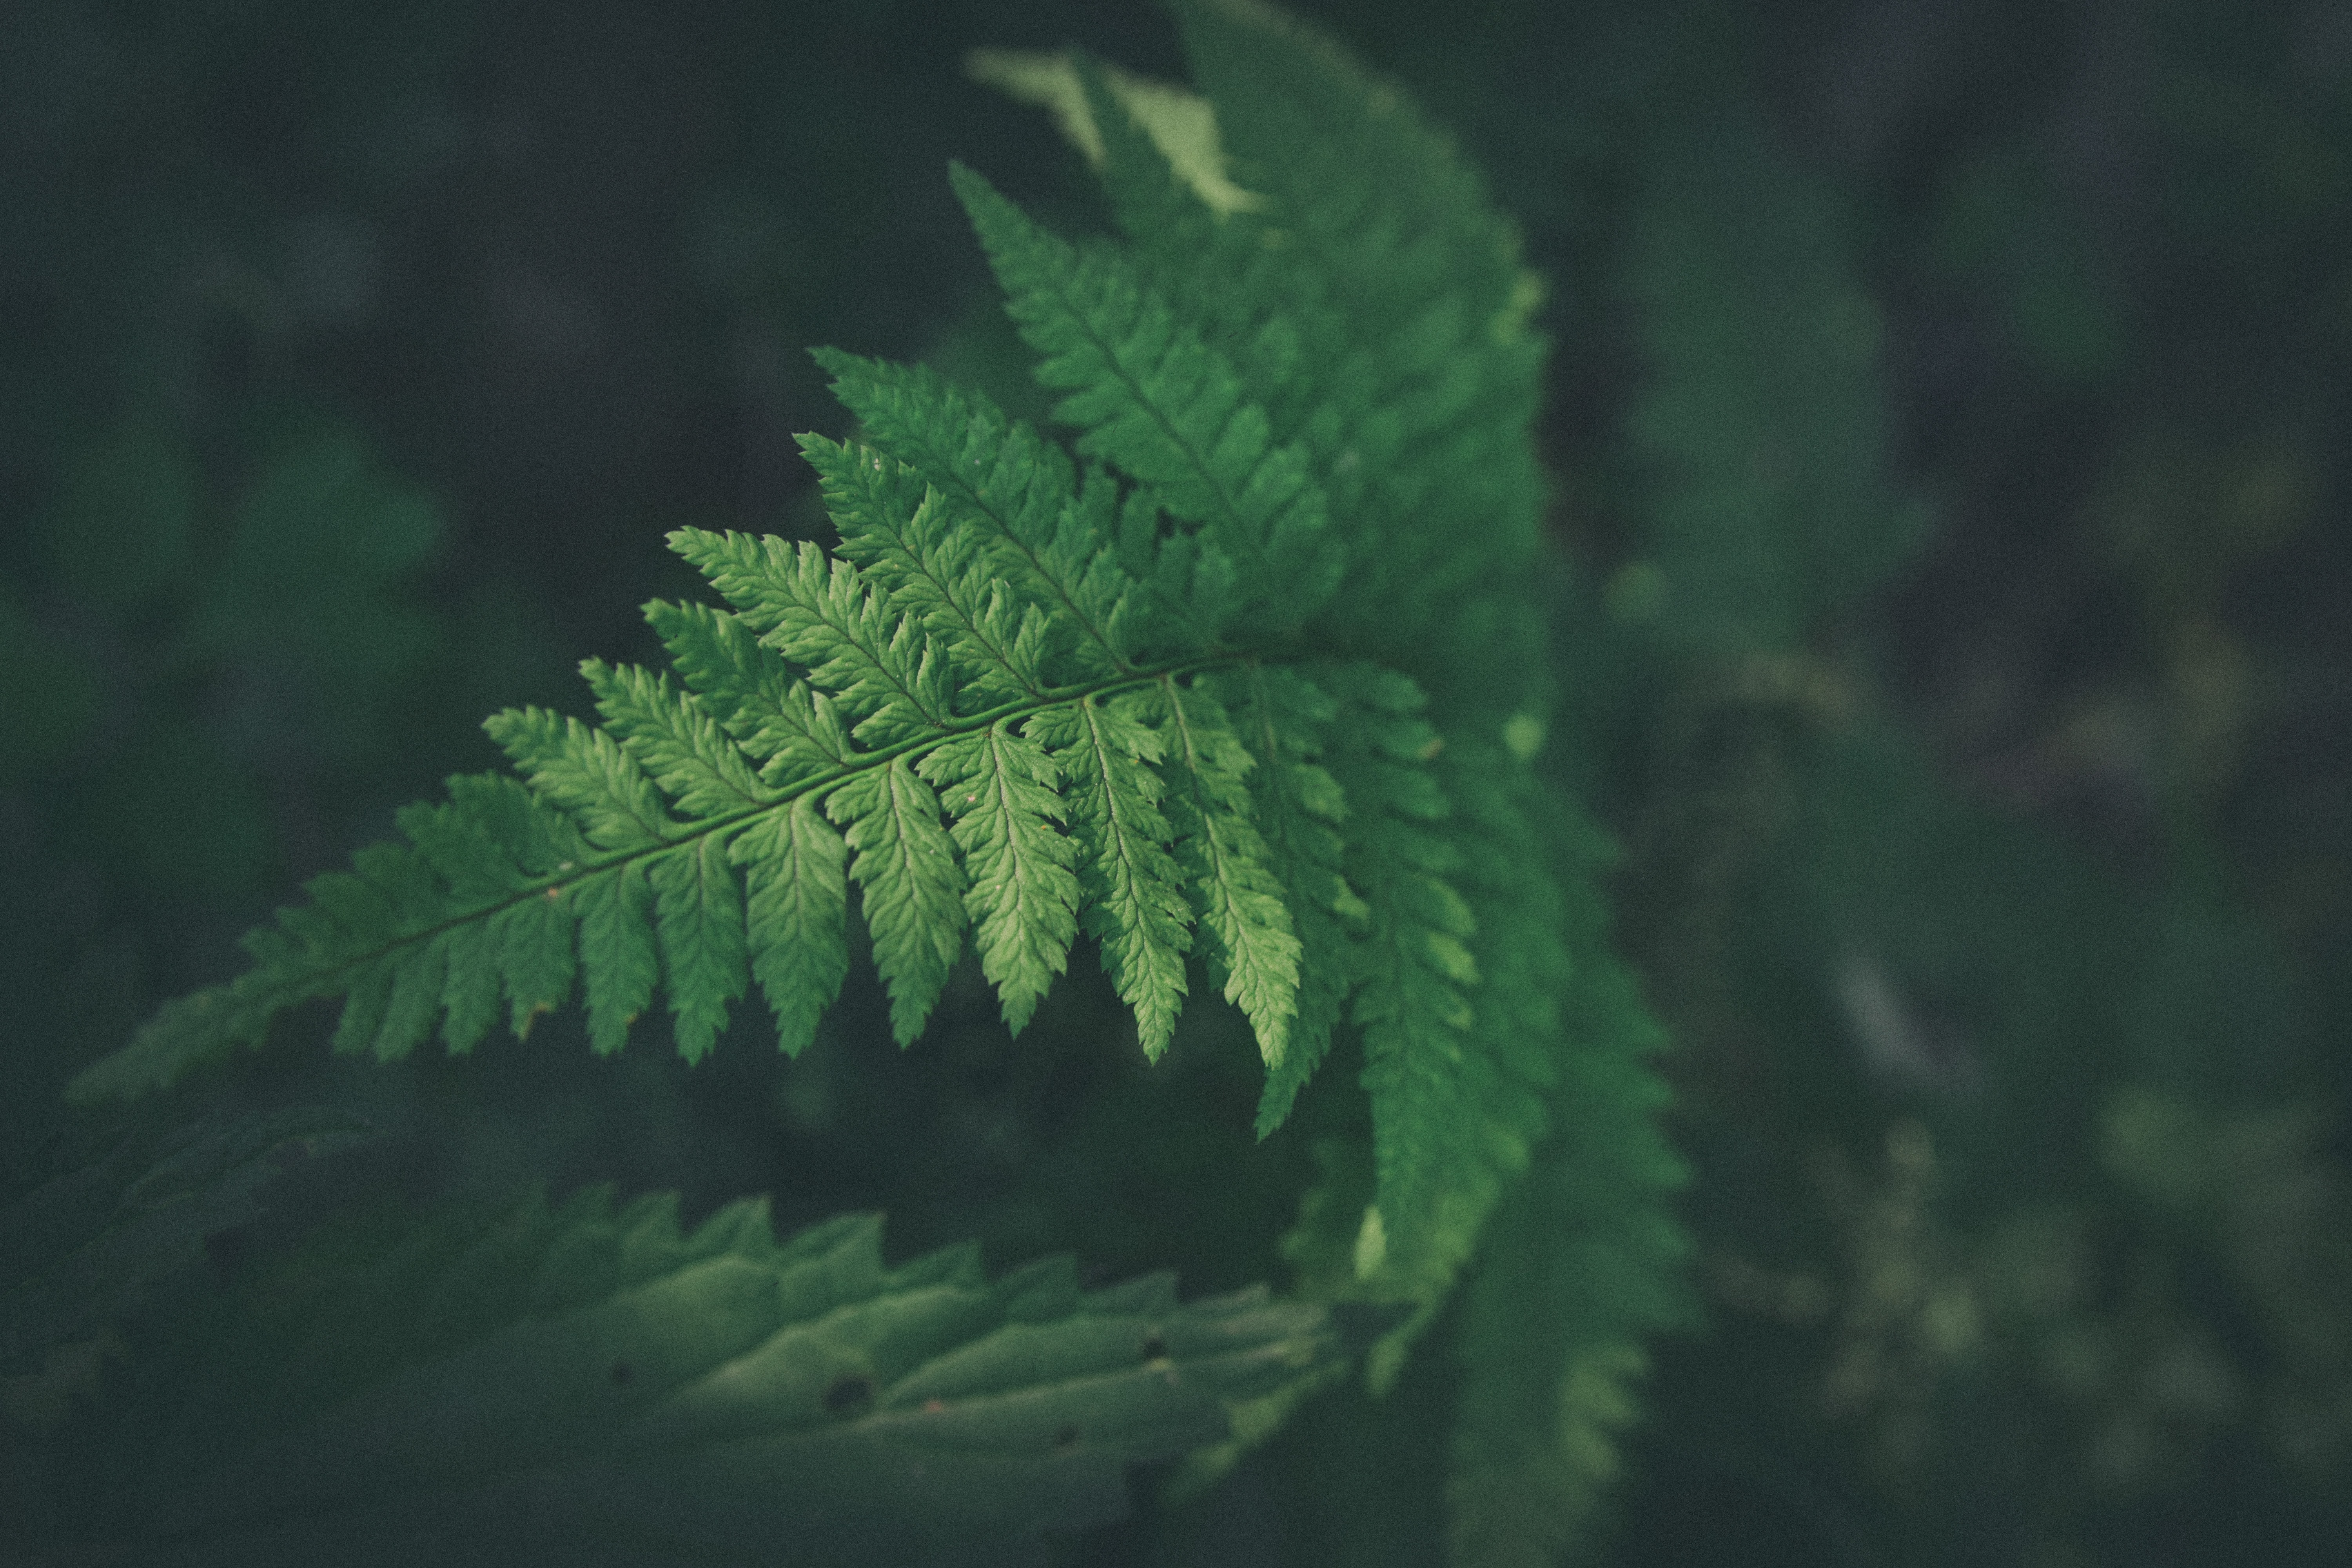 shallow focus photography of green leafed plant